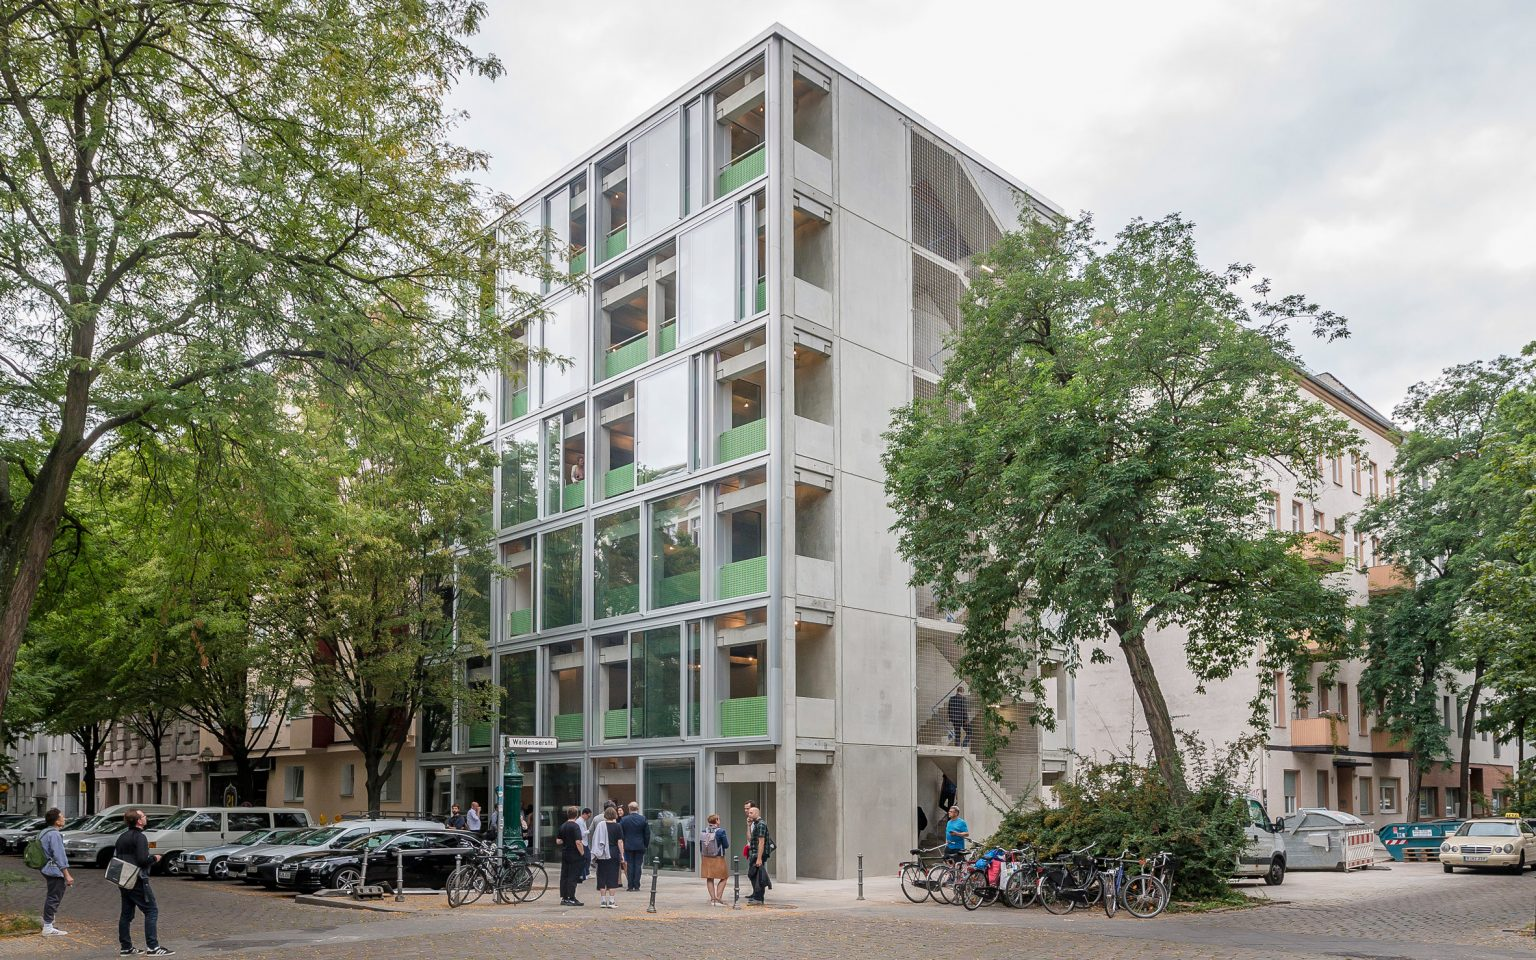 Wohnregal is a prefabricated concrete live-work apartment block in Berlin